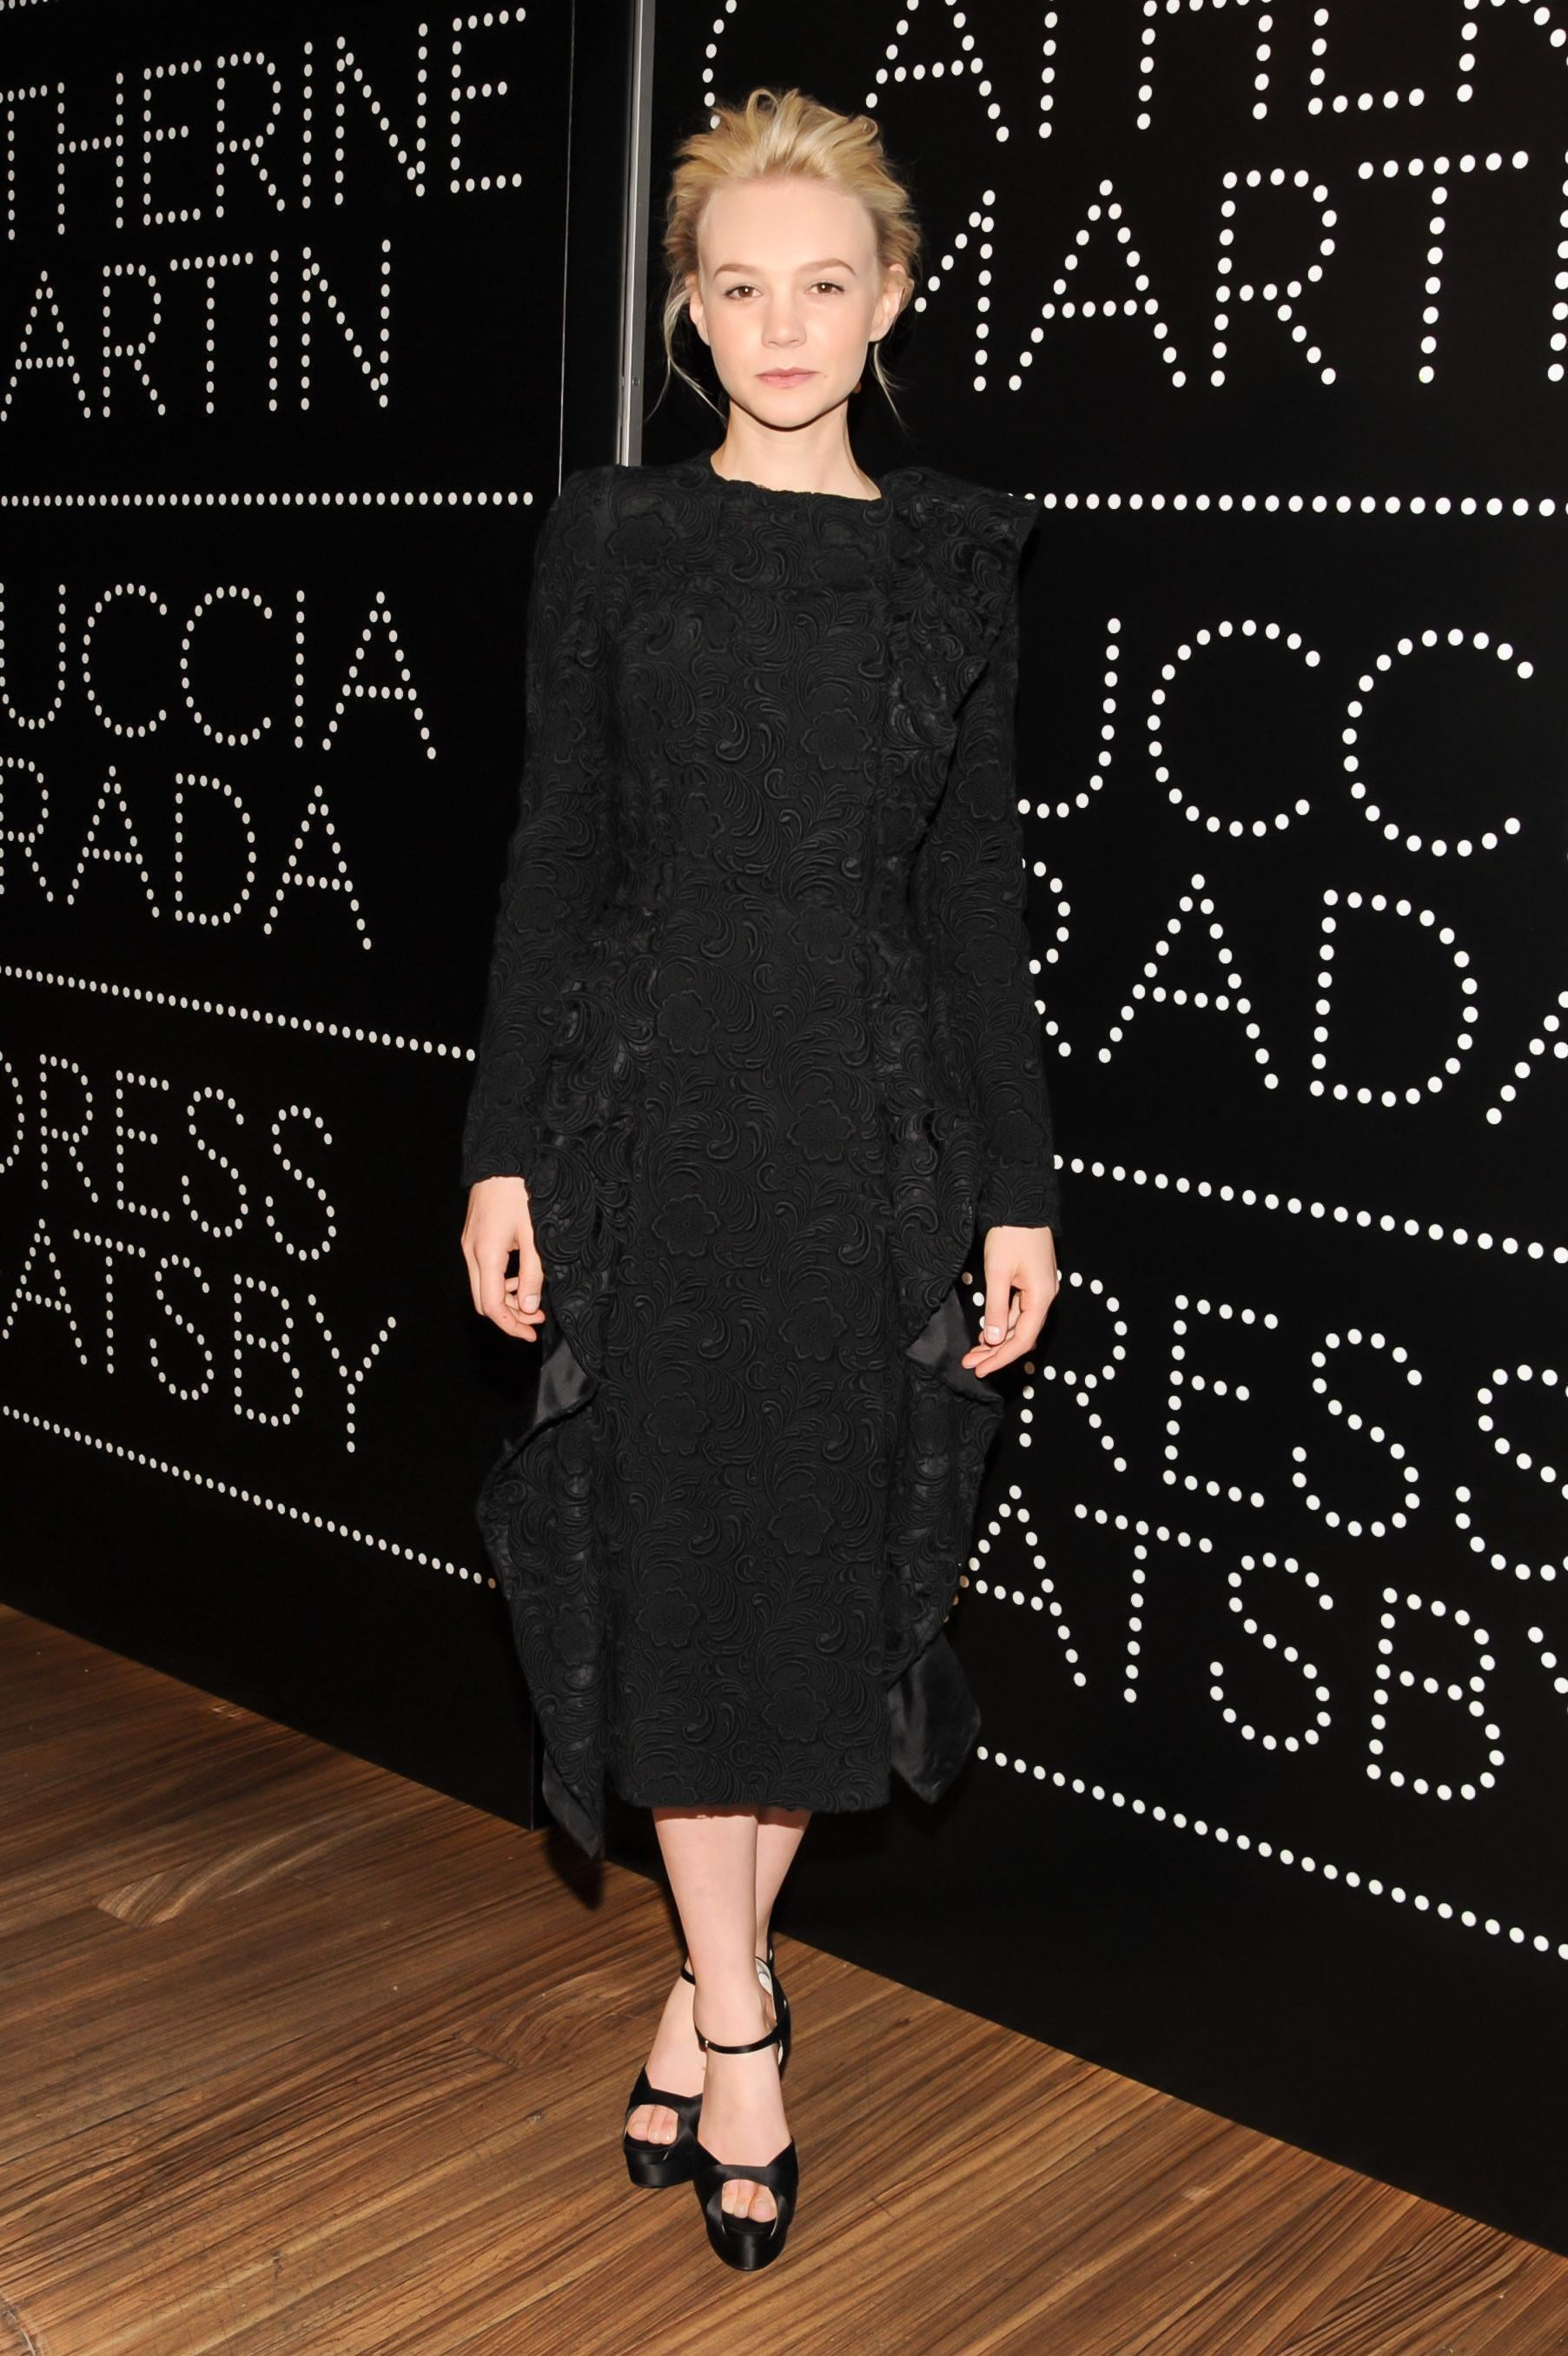 Carey Mulligan in Lace Prada at a 2013 The Great Gatsby Event